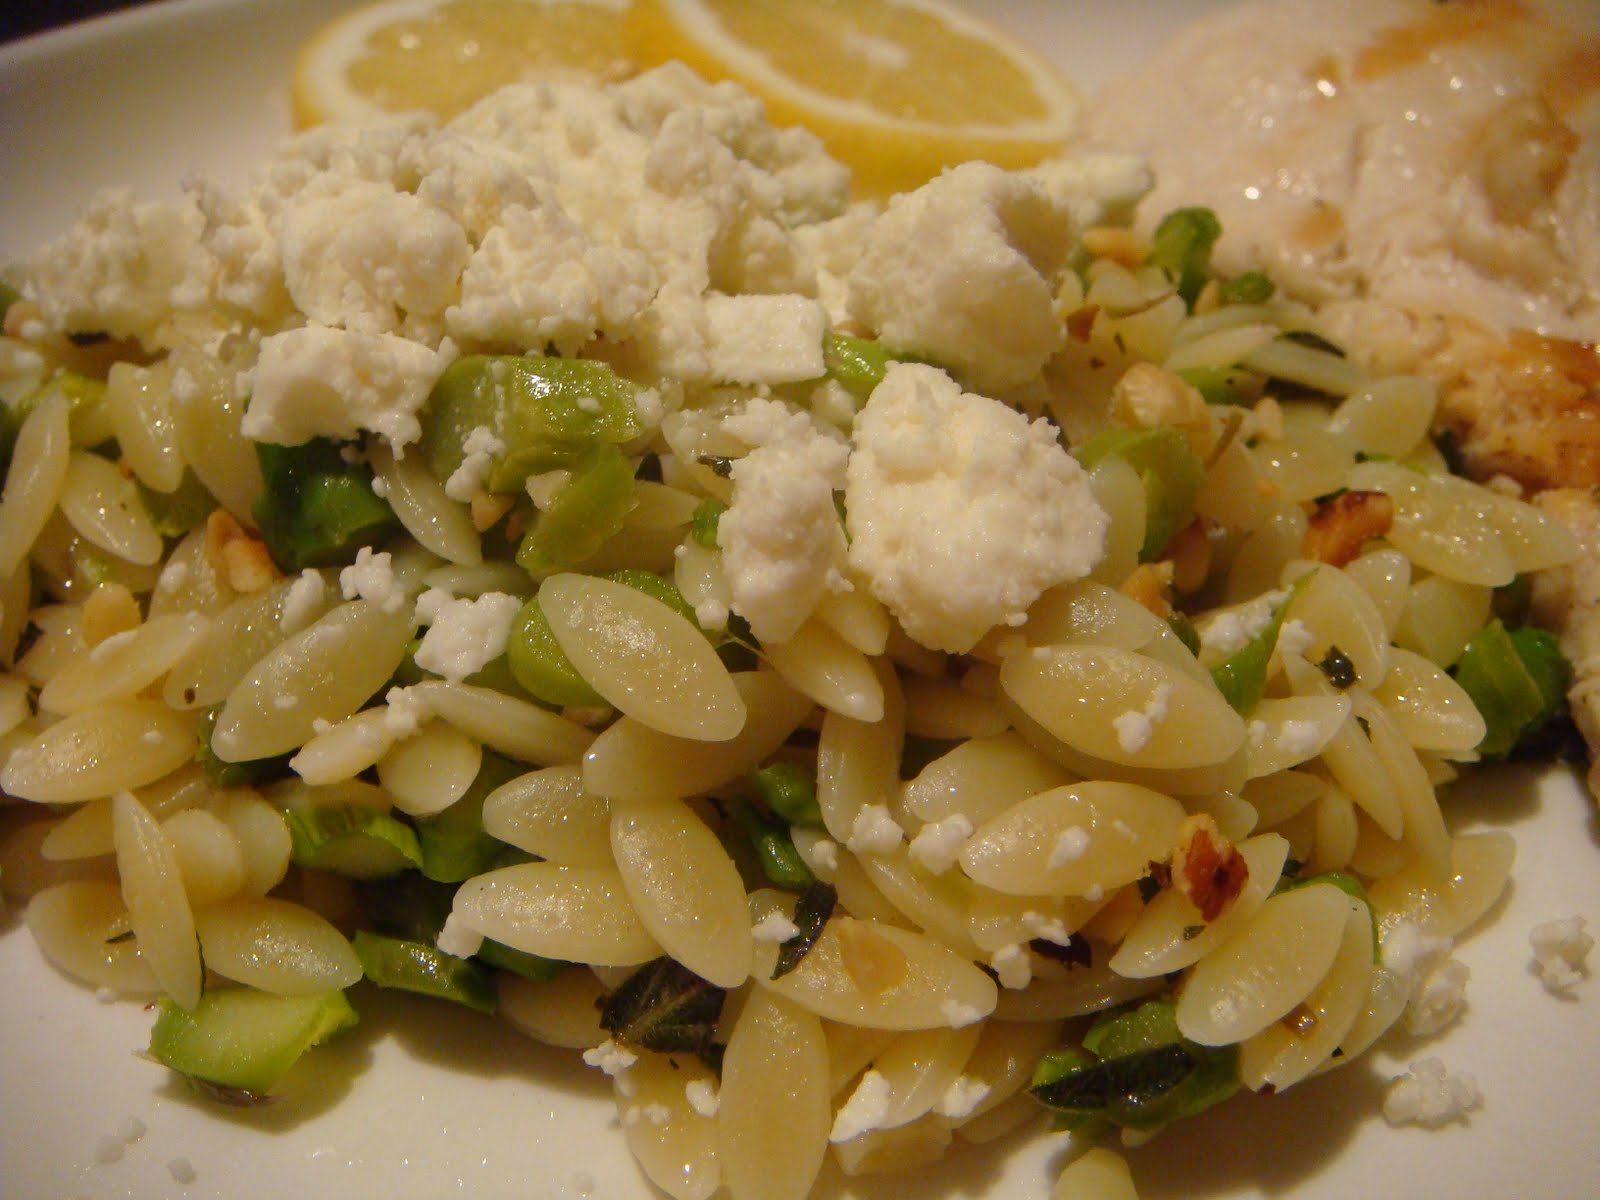 Delicious Dishings: Lemon-Oregano Grilled Chicken With Feta And Orzo